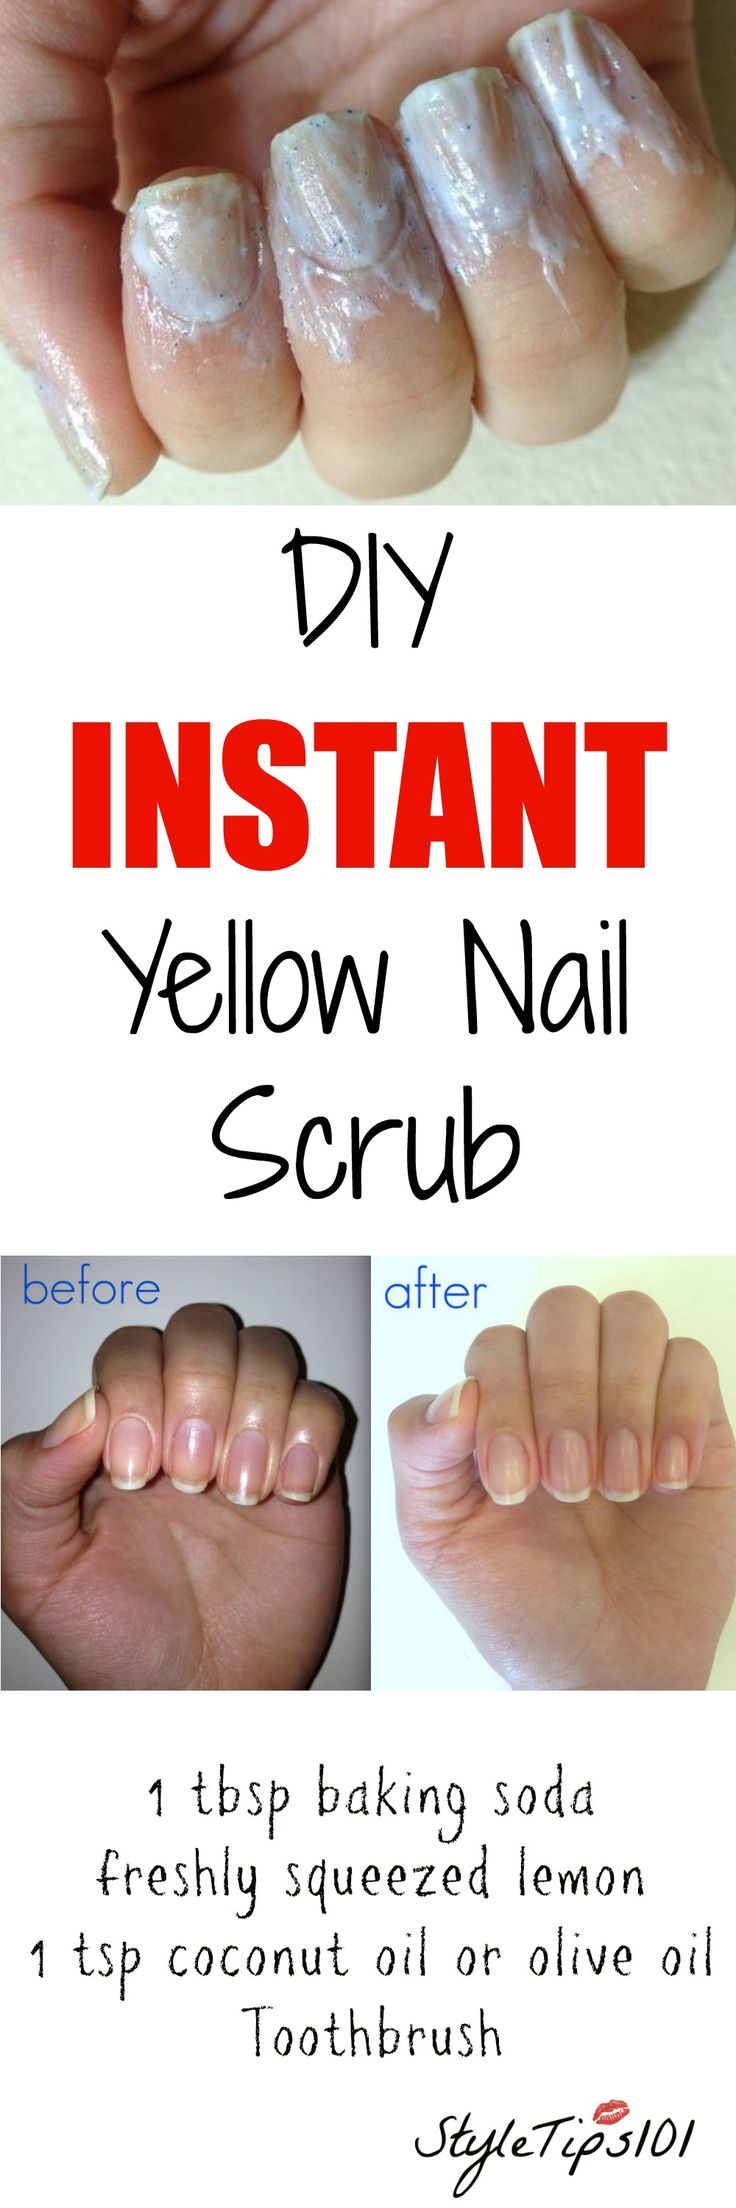 Use an old toothbrush and scrub the paste directly onto your fingernails to see immediate results.